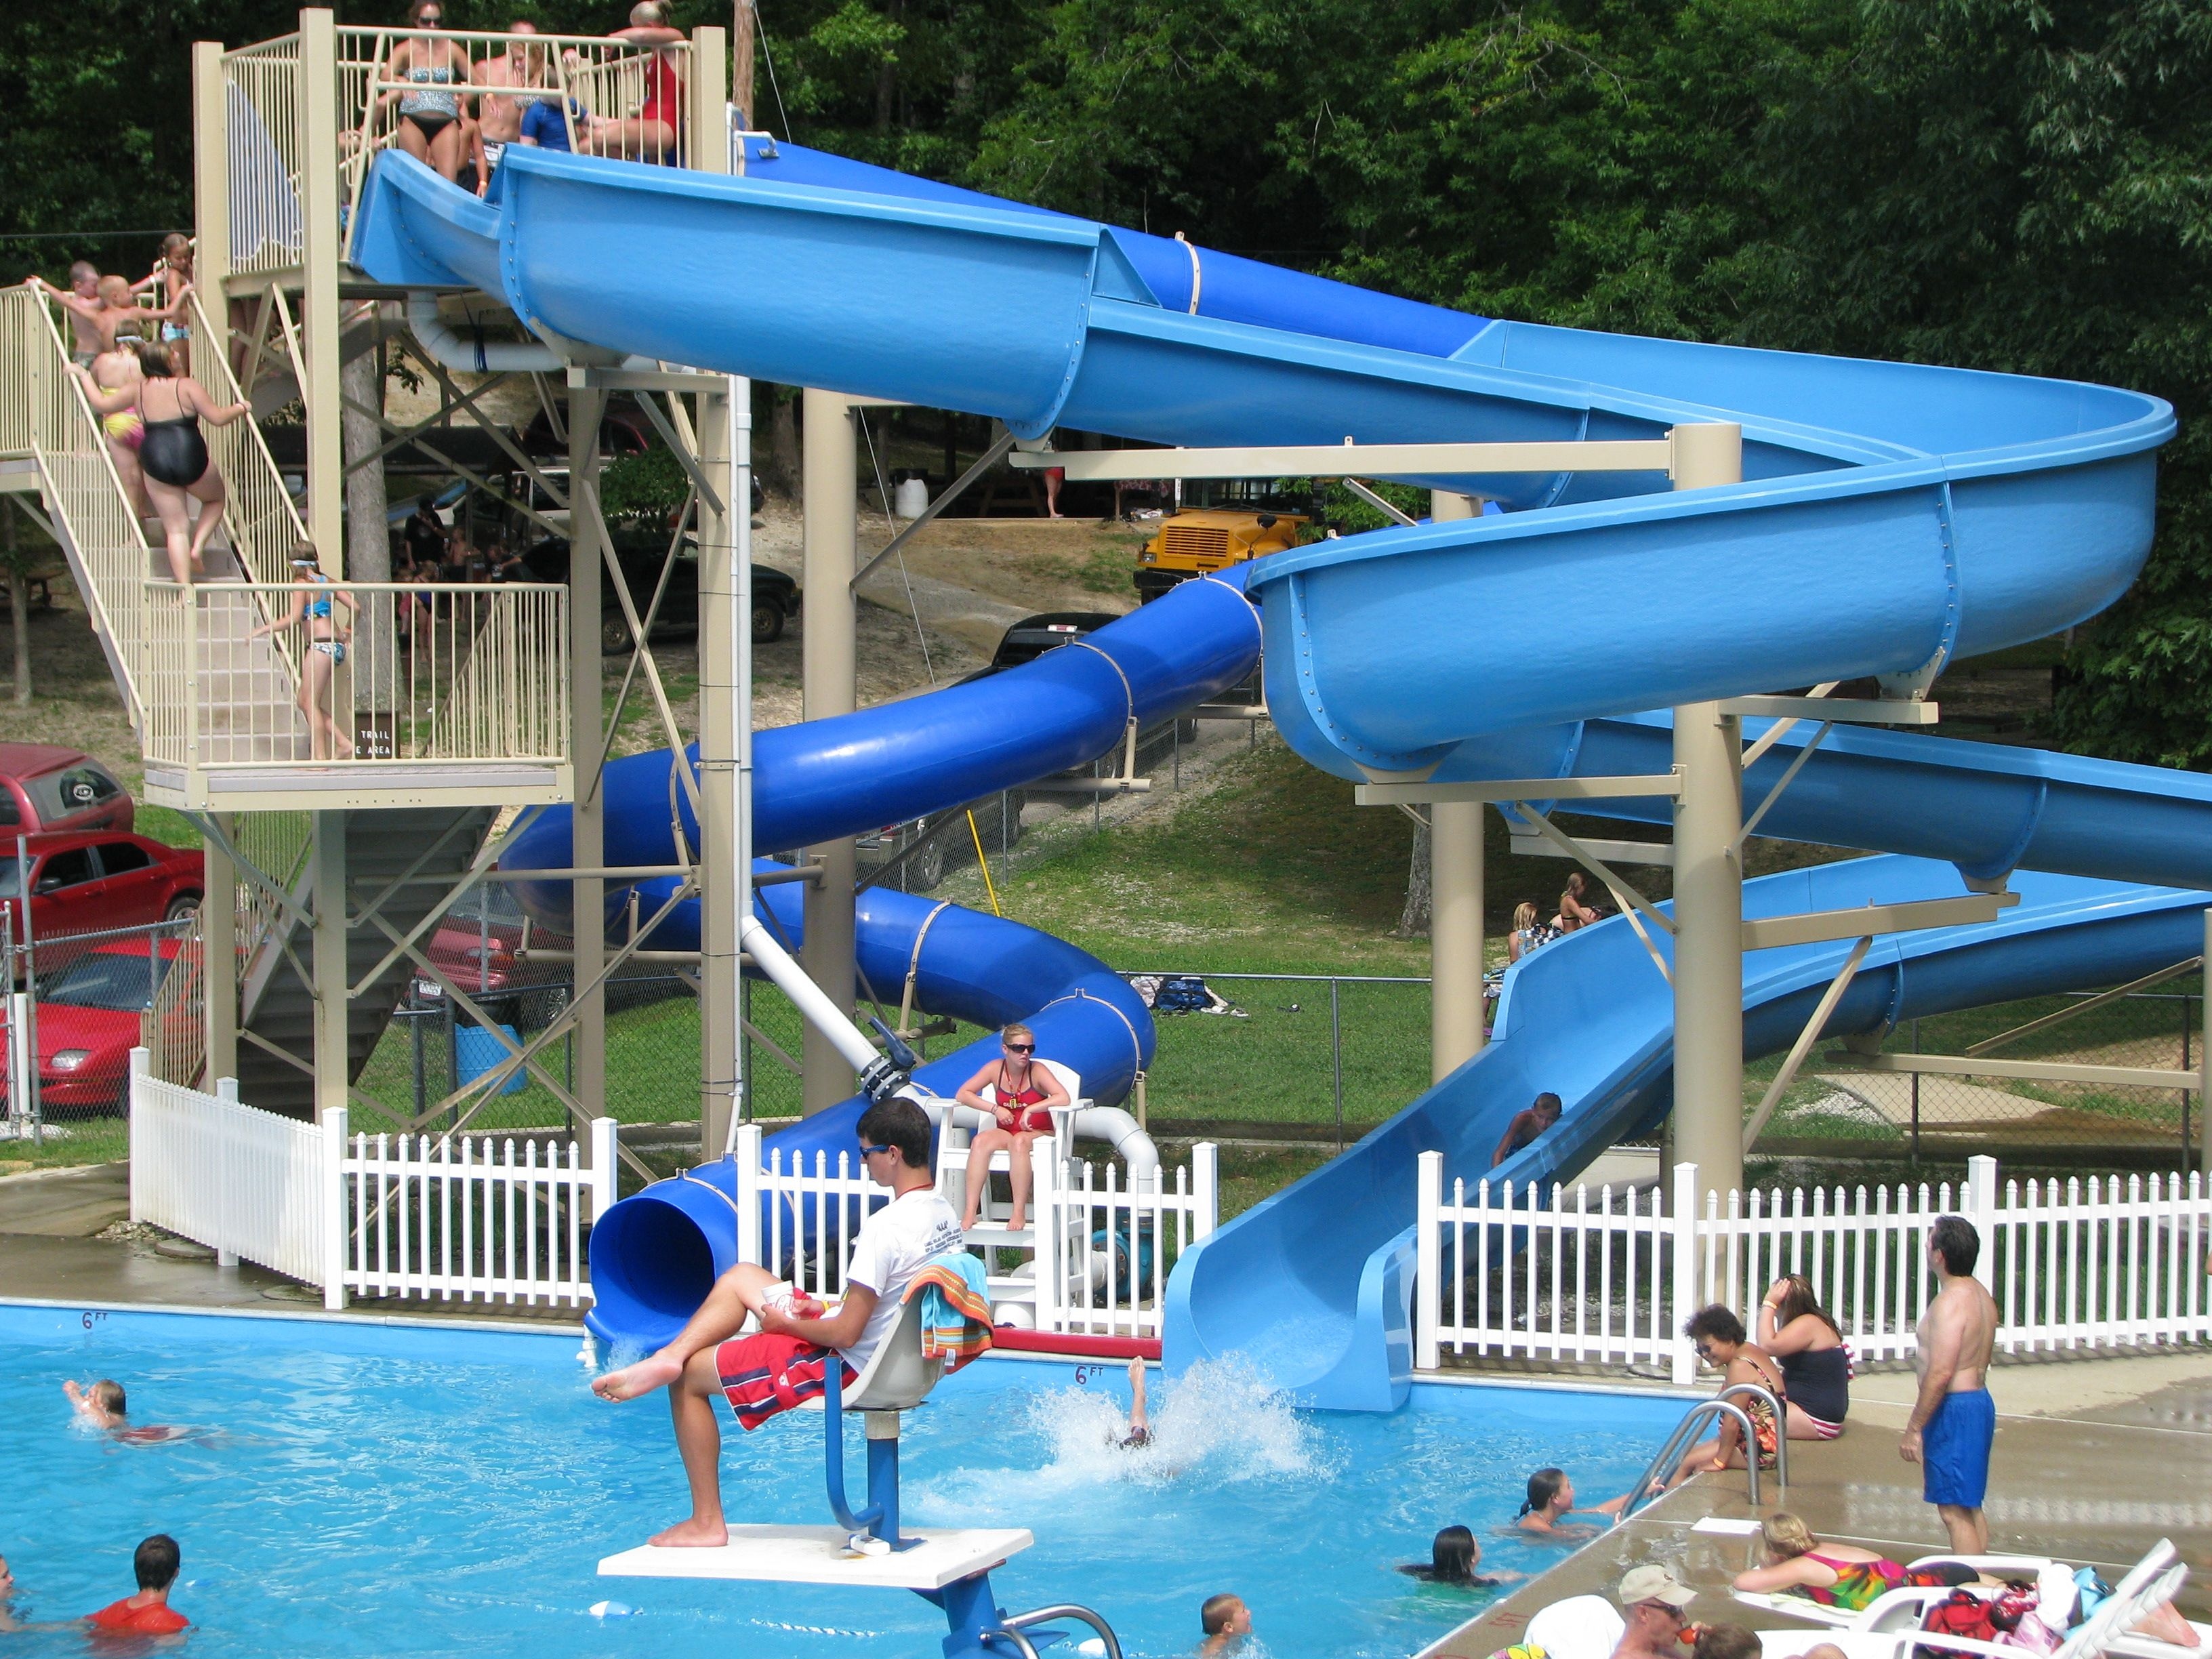 Waterways in julian wv tourism family fun golf - Swimming pools with slides north west ...